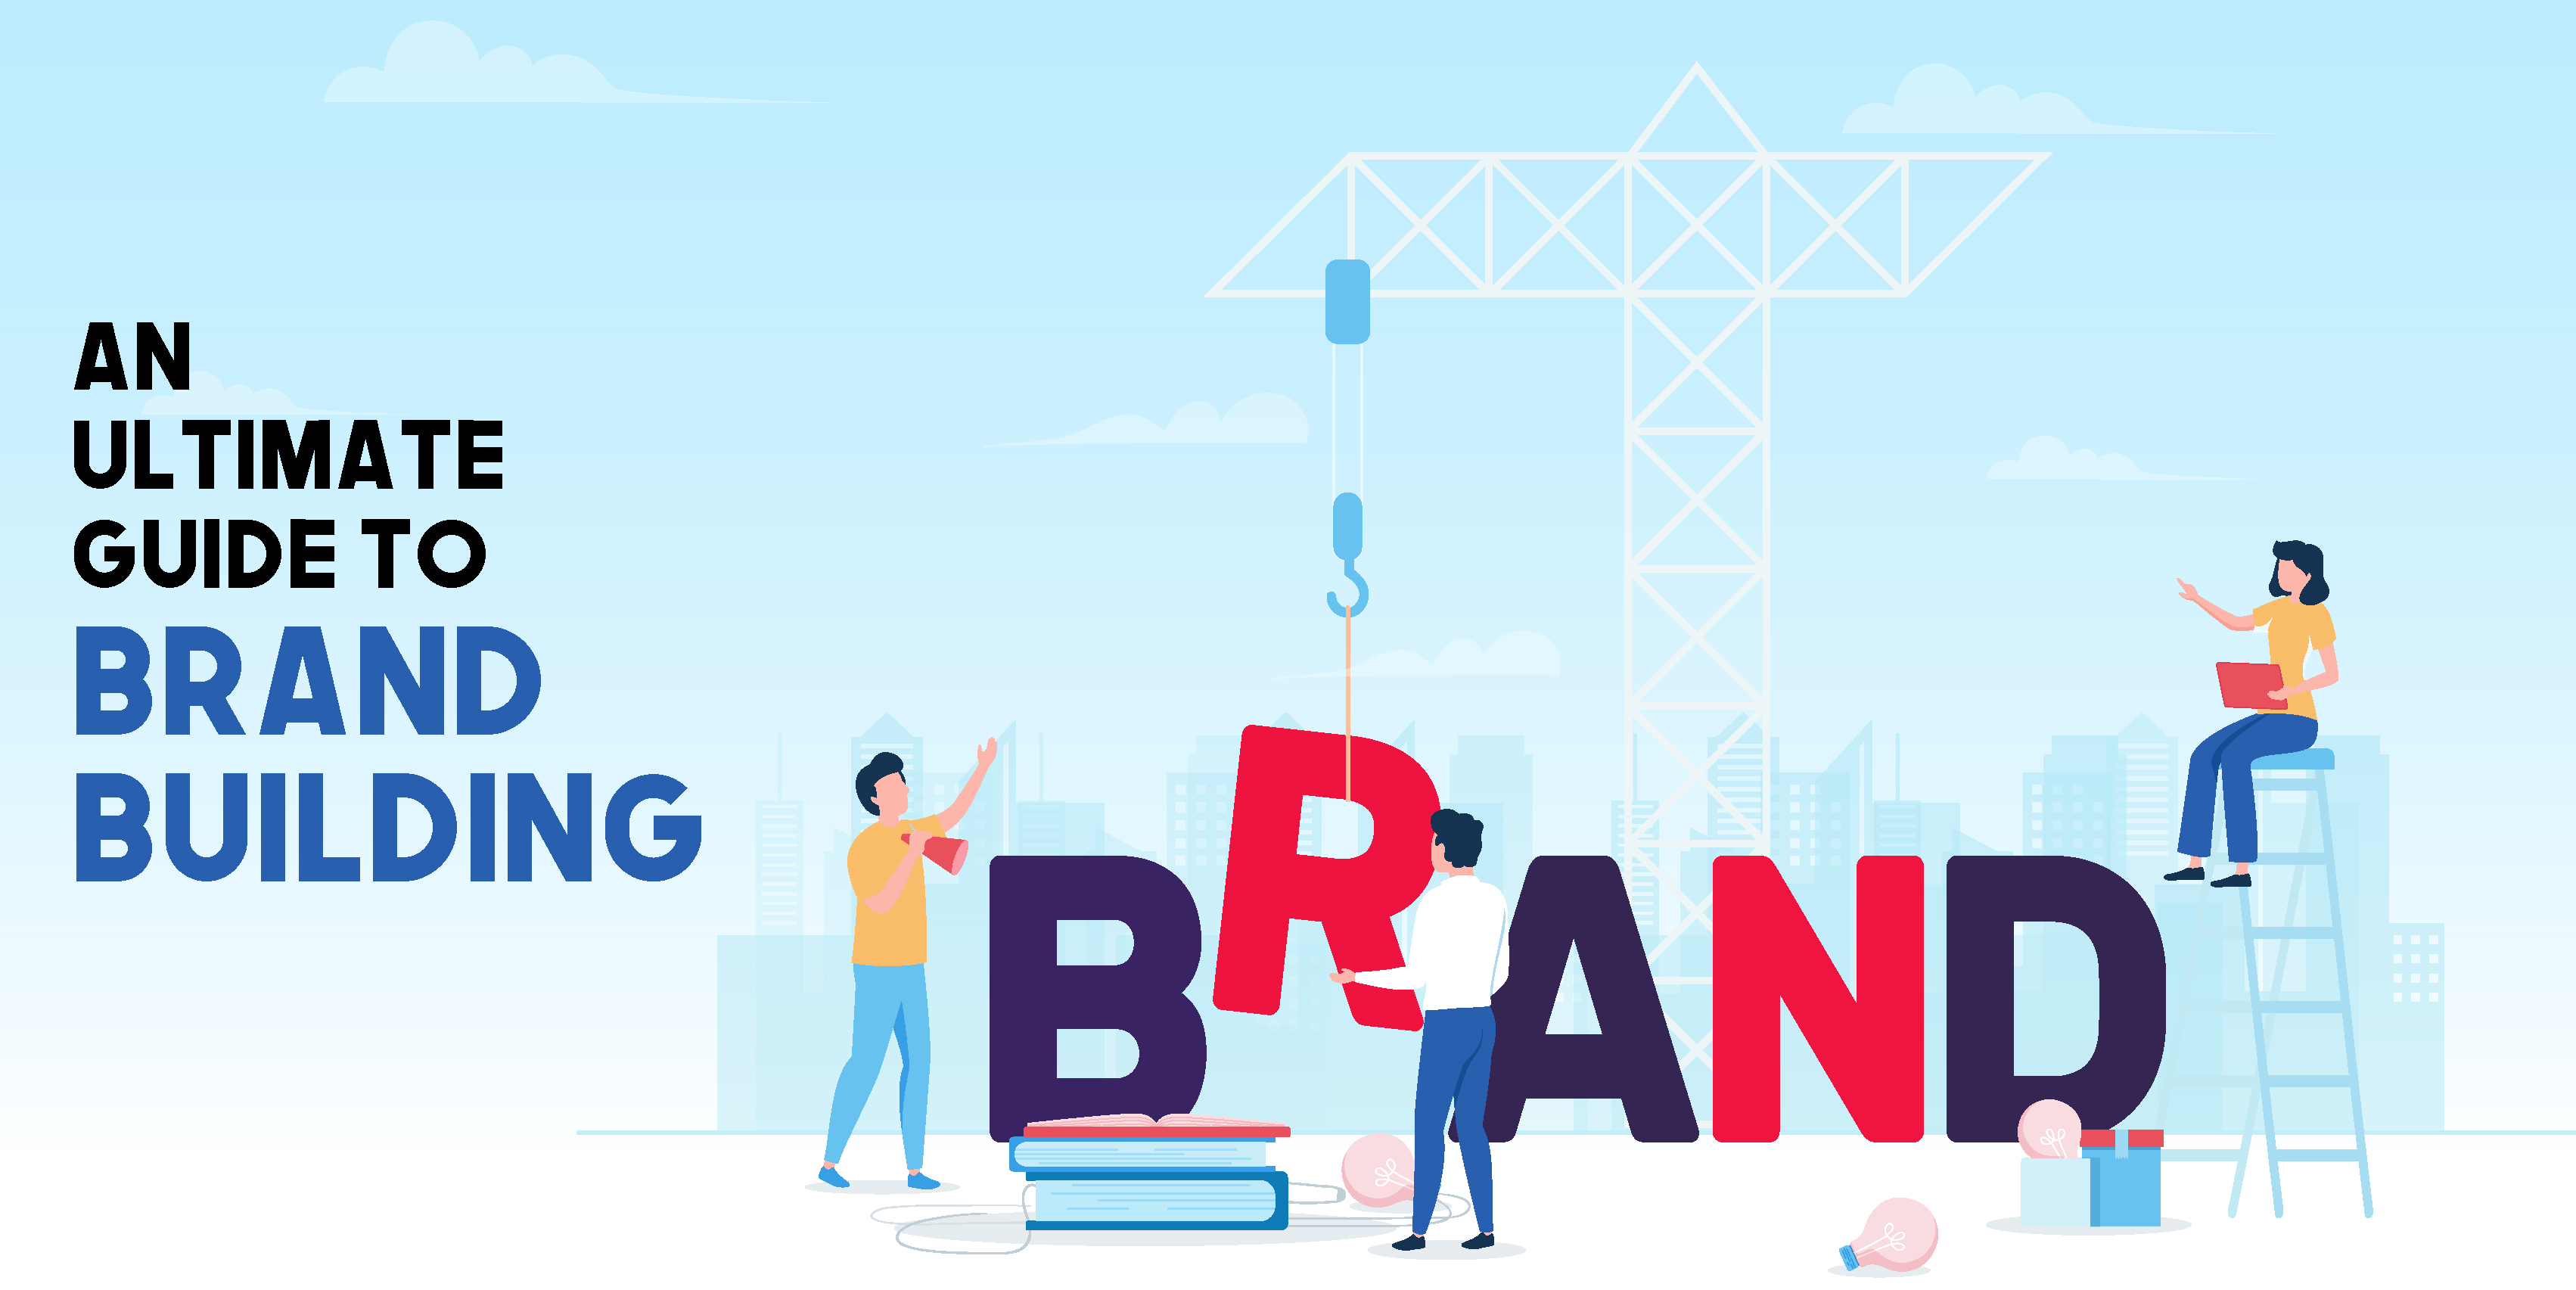 An Ultimate Guide to Brand Building